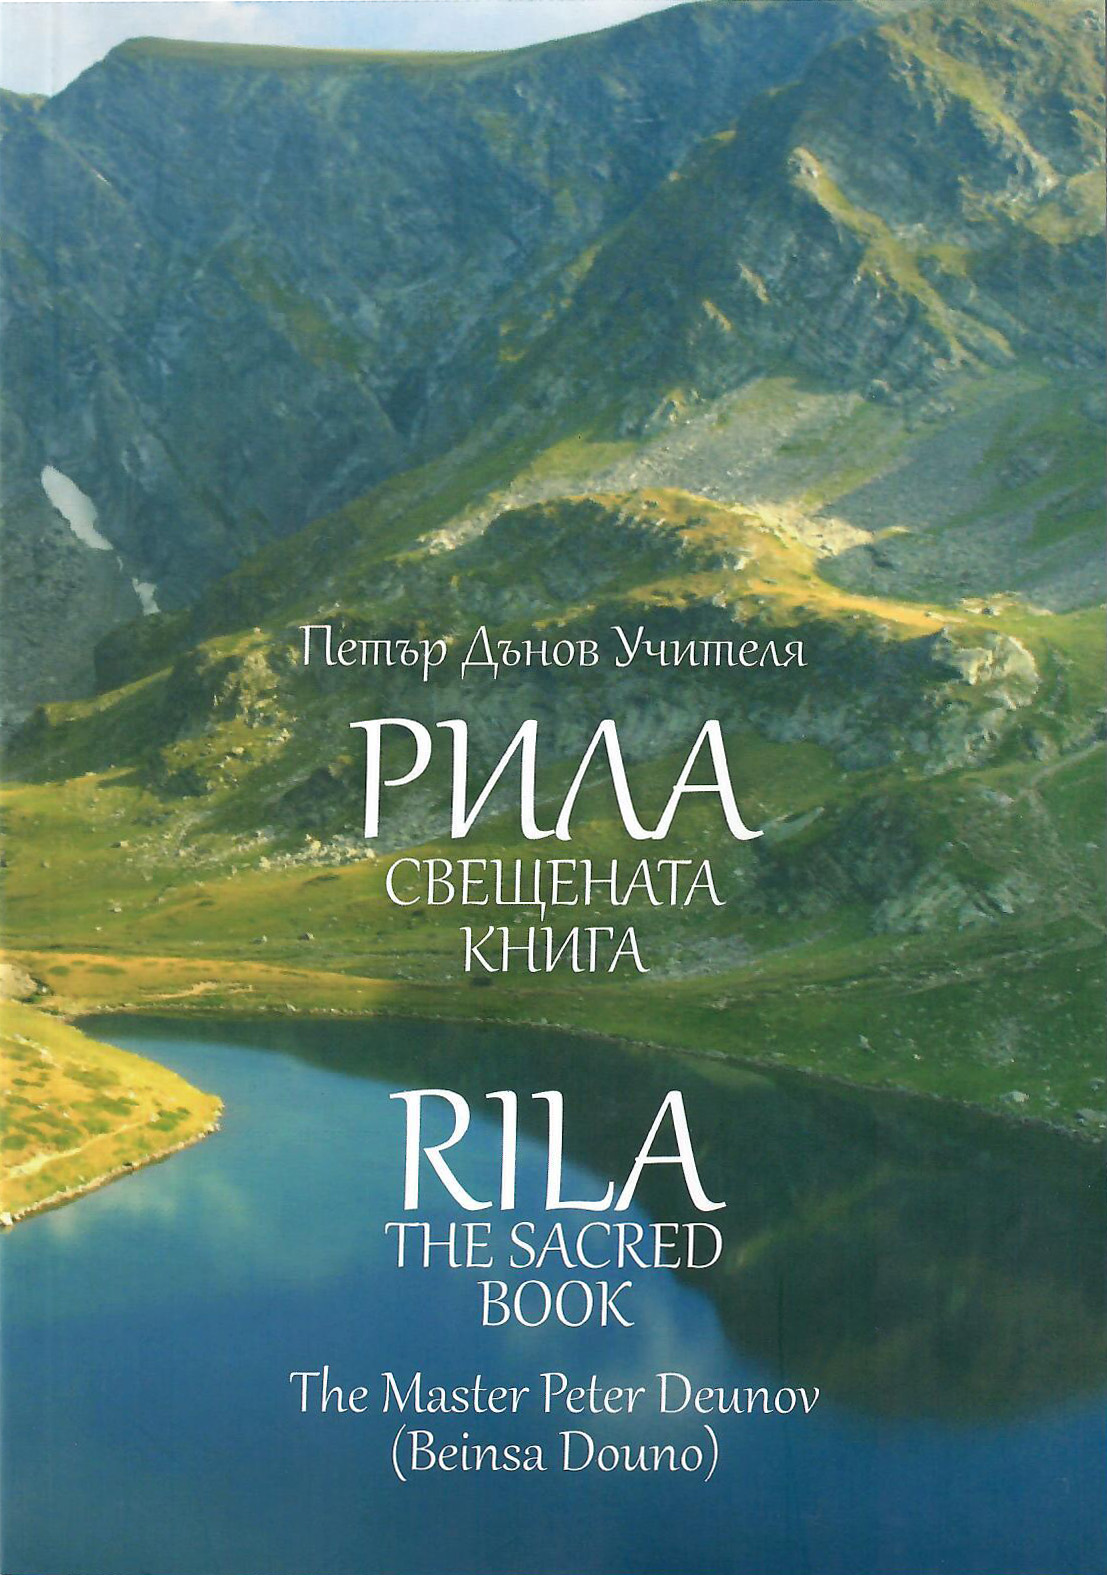 Rila - The Sacred Book